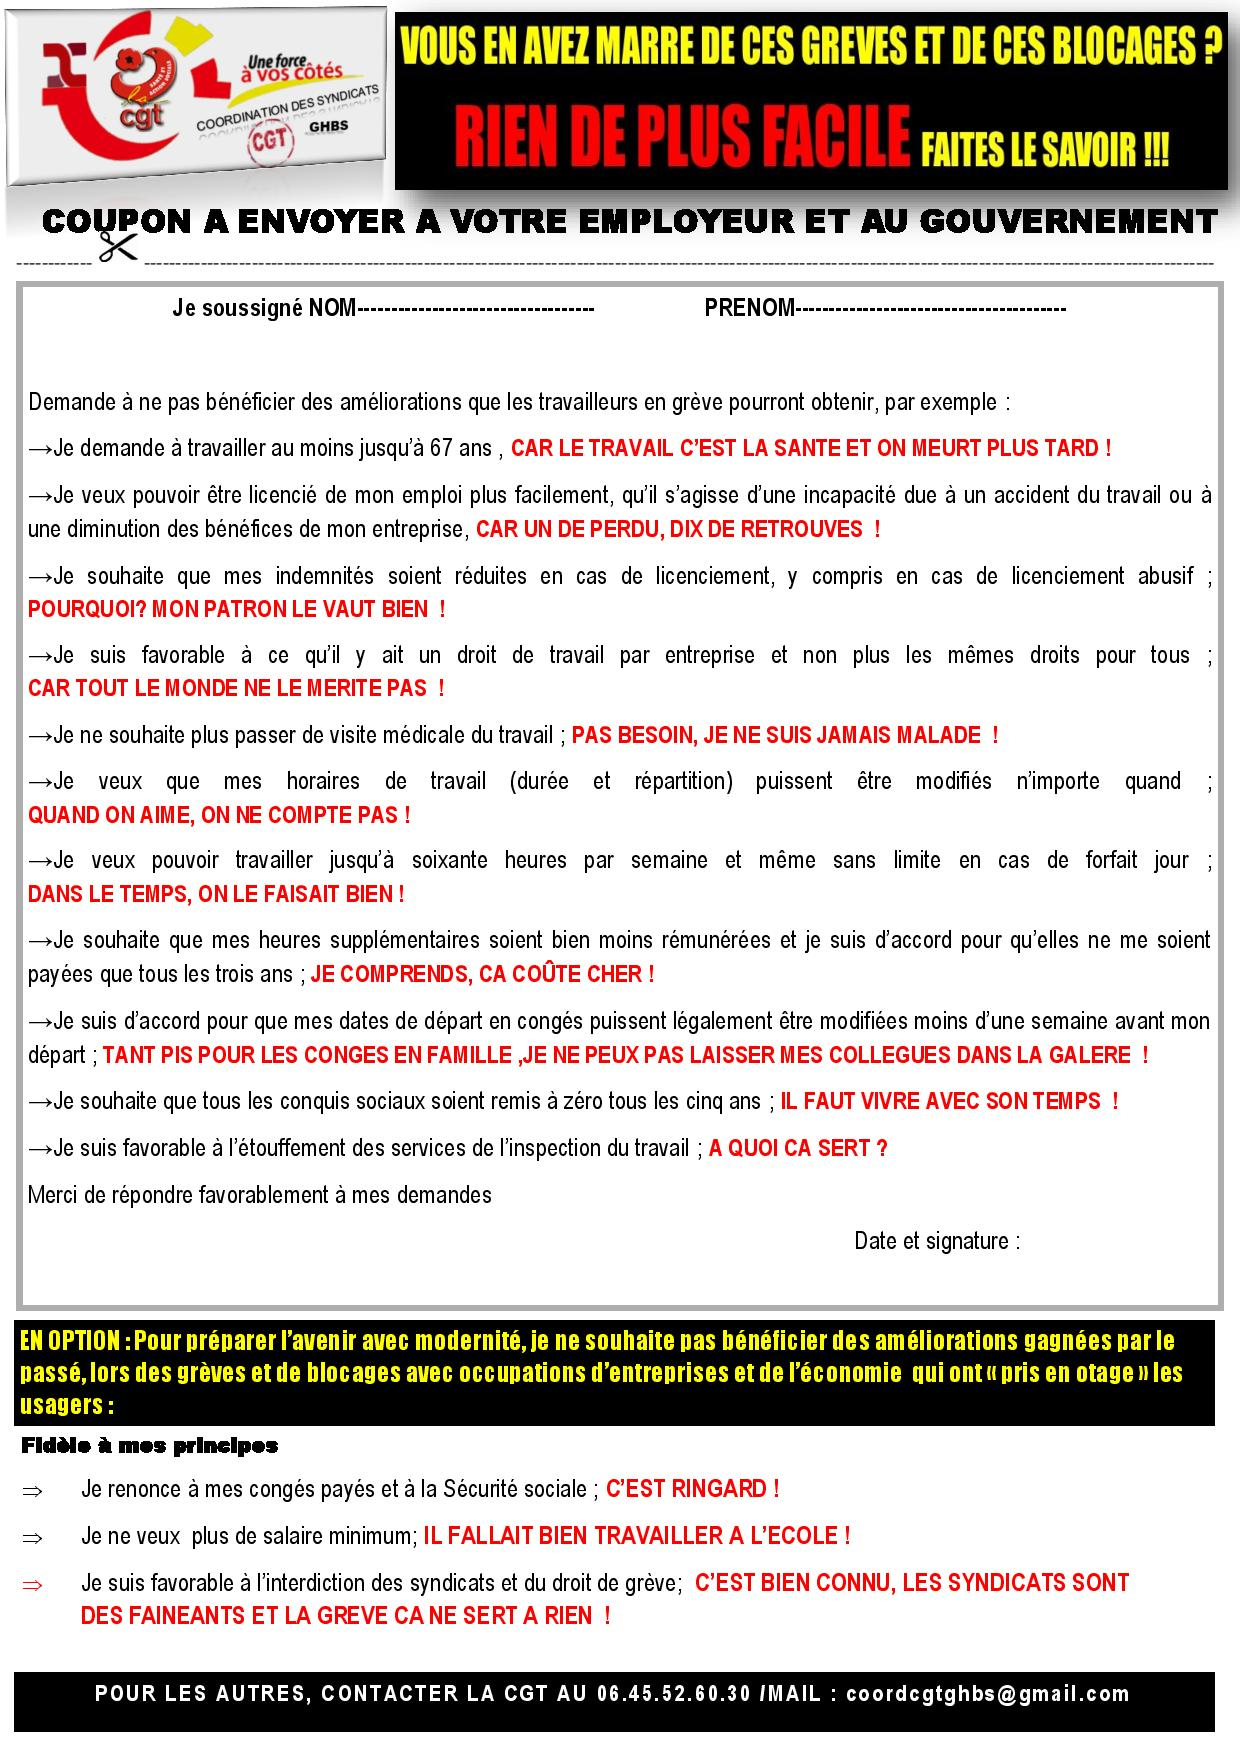 27112019 tract blocage greve vers cds cgt ghbs page 001 1